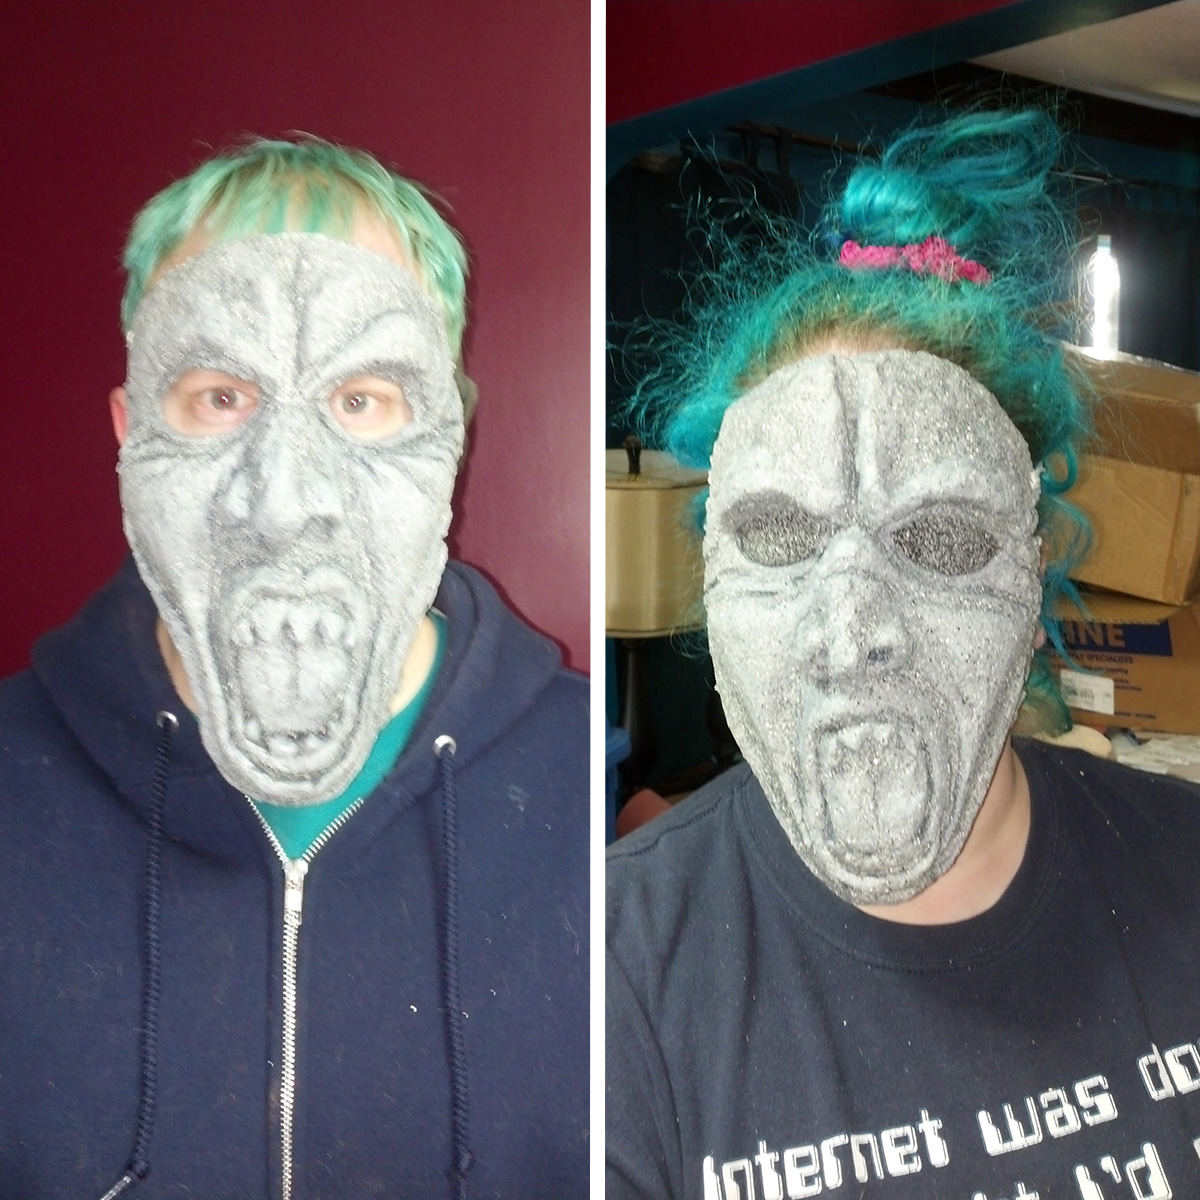 A side by side image of a man and a woman wearing weeping angel masks.